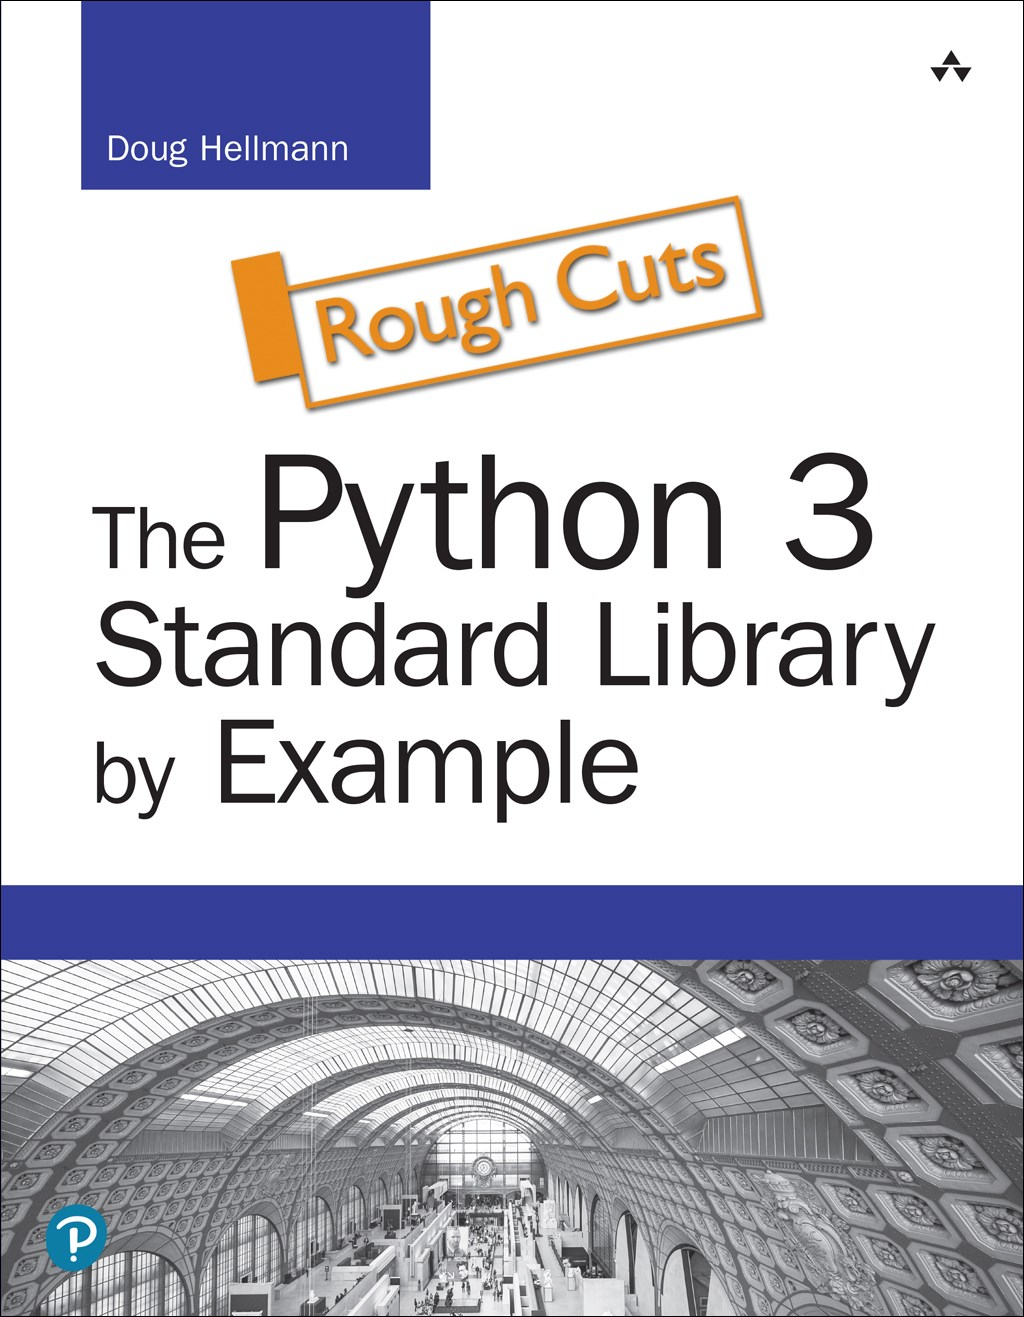 Python 3 Standard Library by Example, Rough Cuts, The, 2nd Edition